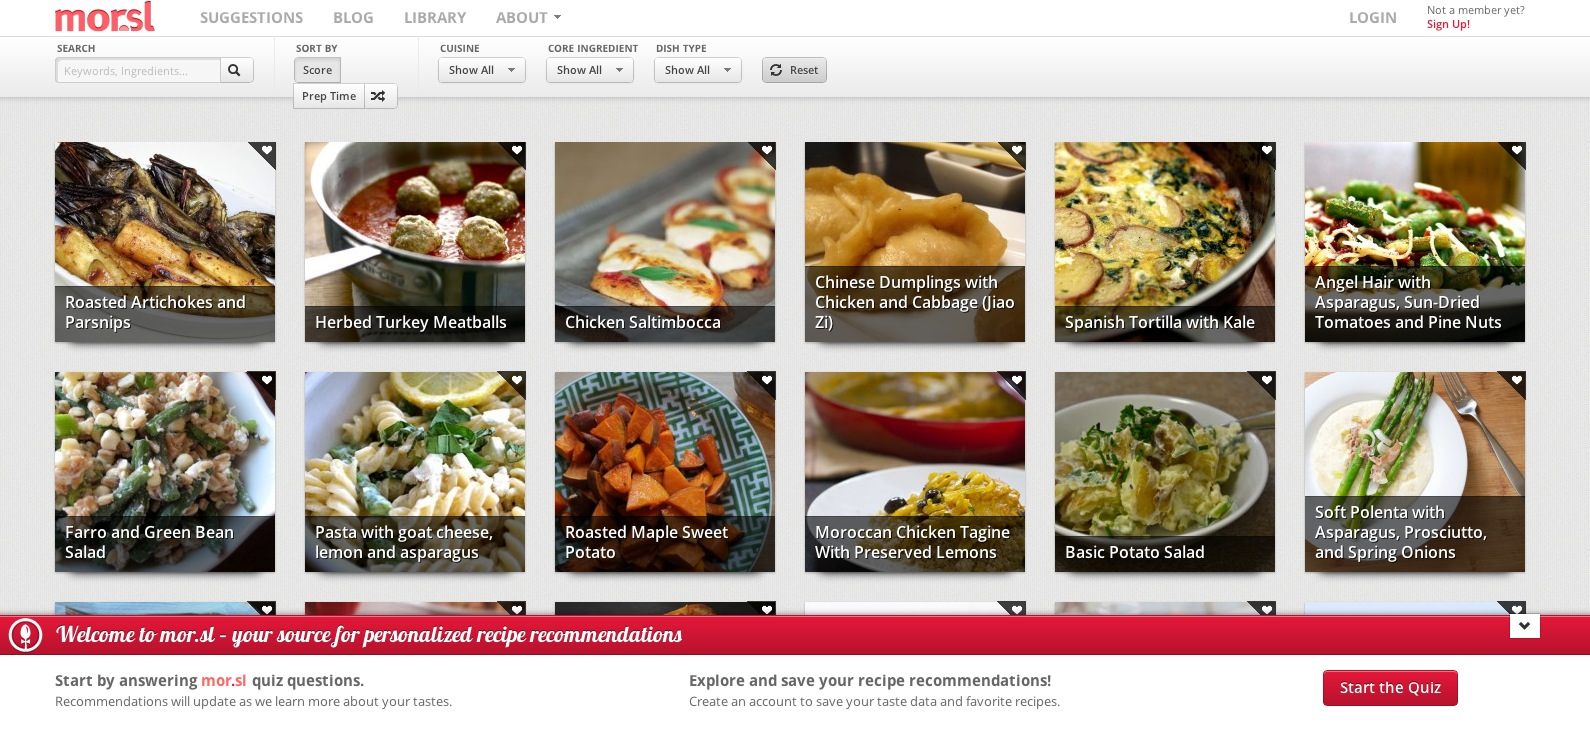 Mor offers recipe recommendations to hungry webonauts techcrunch mor learns your tastes and preferences your allergies and skill level and recommends recipes that will work for your everyday life forumfinder Image collections